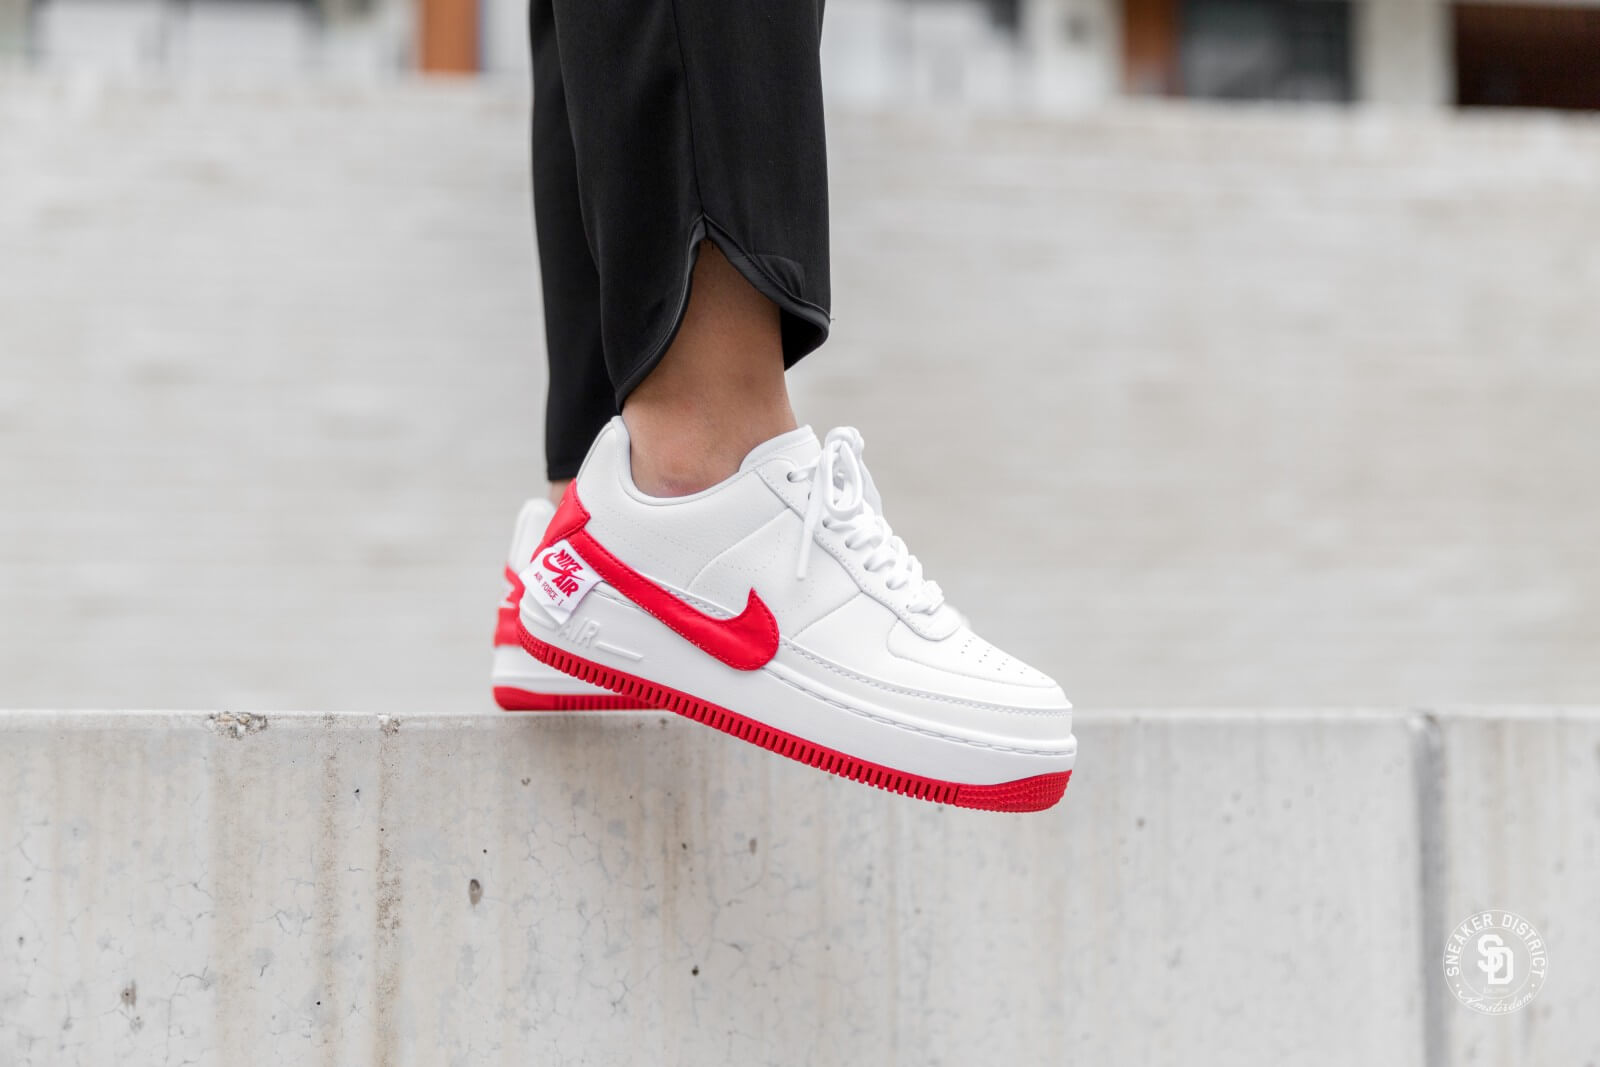 NIKE-AIR-FORCE-1-JESTER-XX-White-University_Red-6-1600.jpg